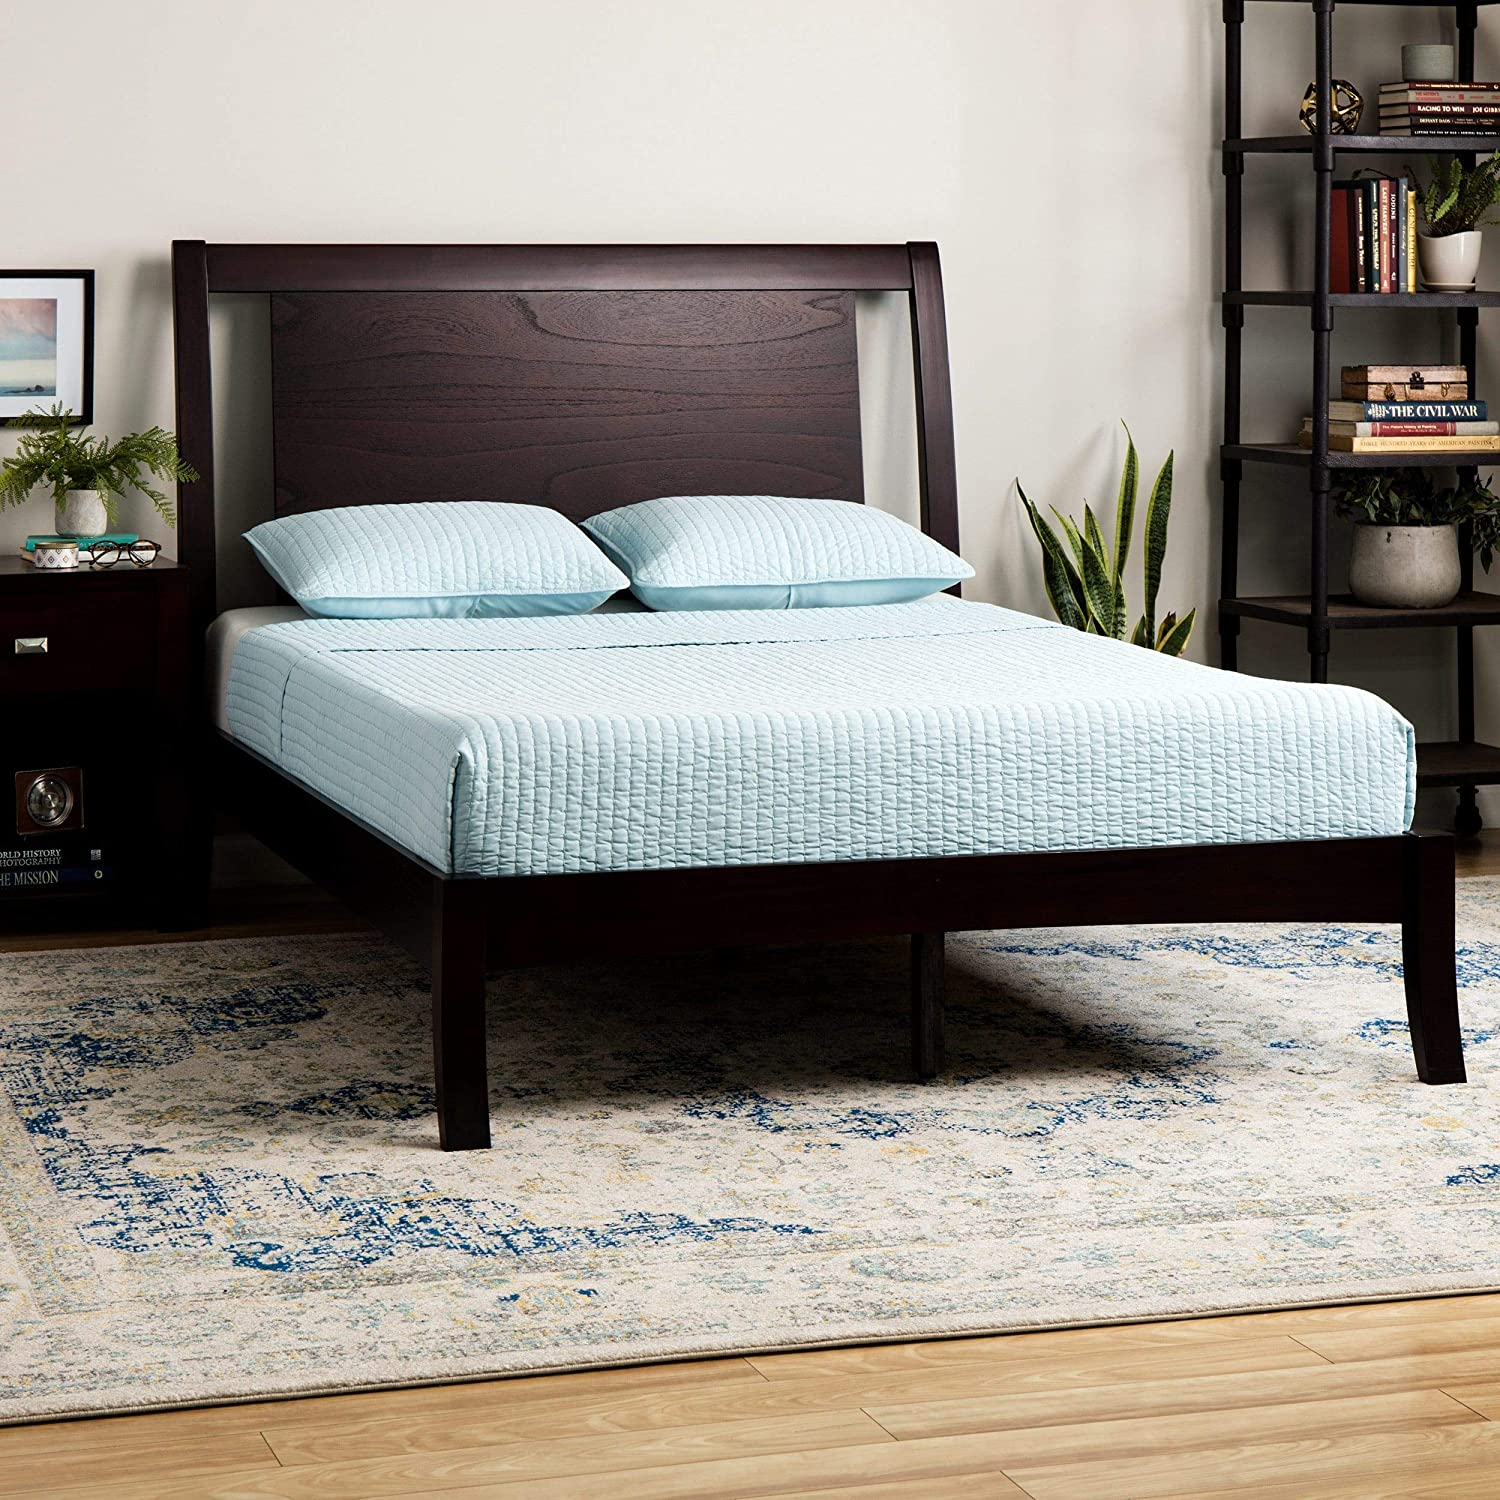 Amazoncom Domusindo Floating Panel Queen Size Sleigh Bed Kitchen